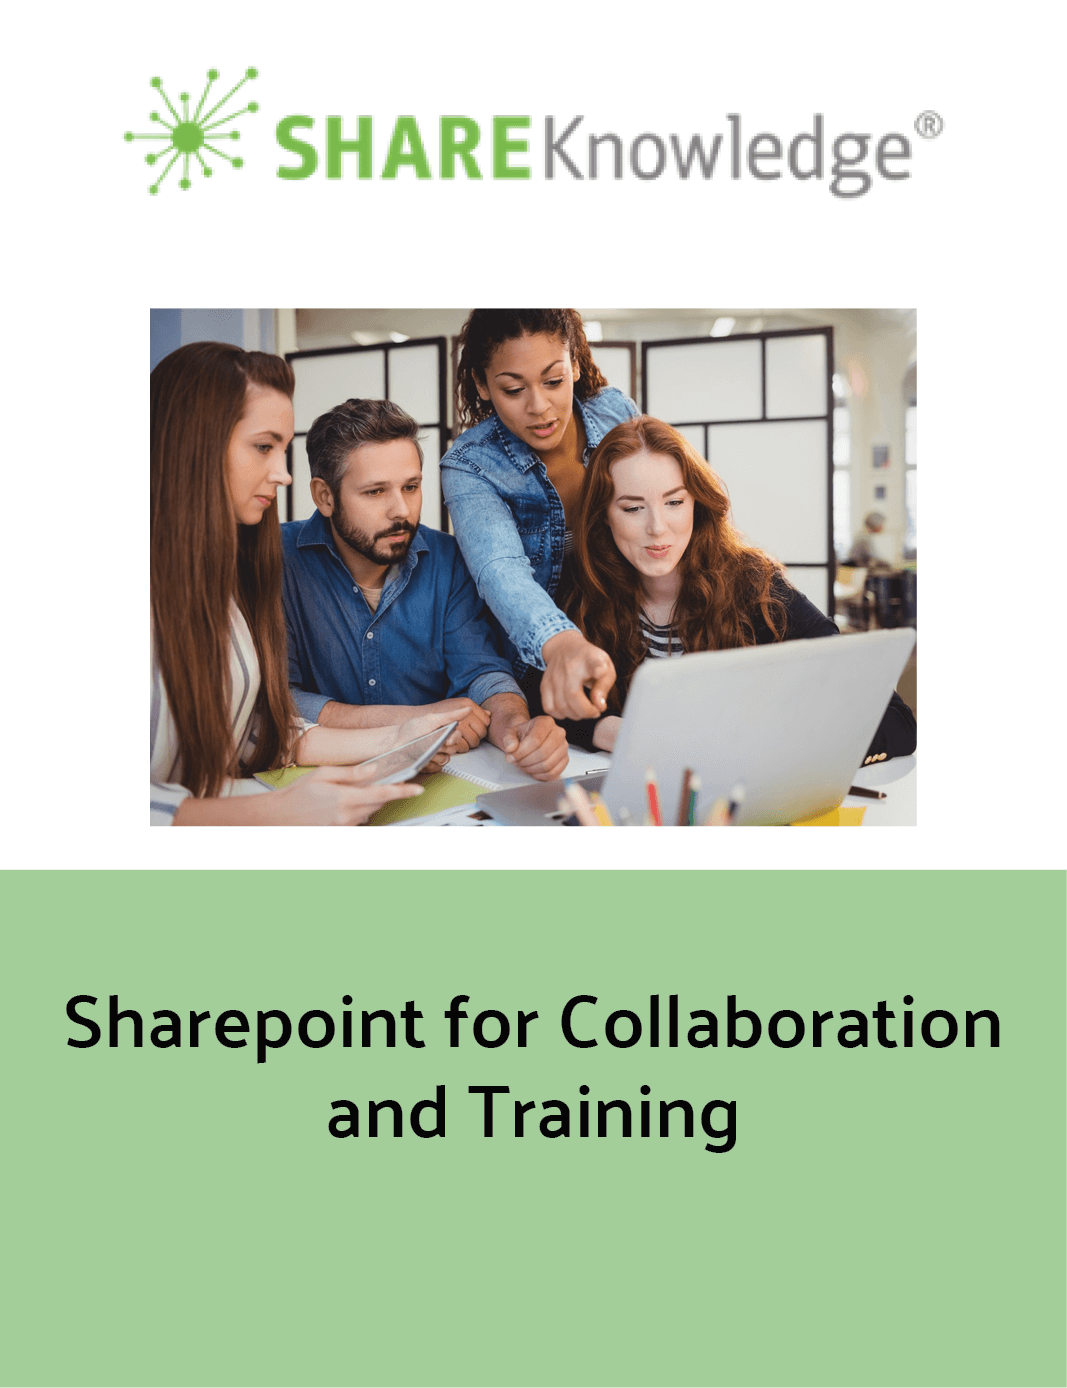 SharePoint for Collaboration and Training | ShareKnowledge LMS